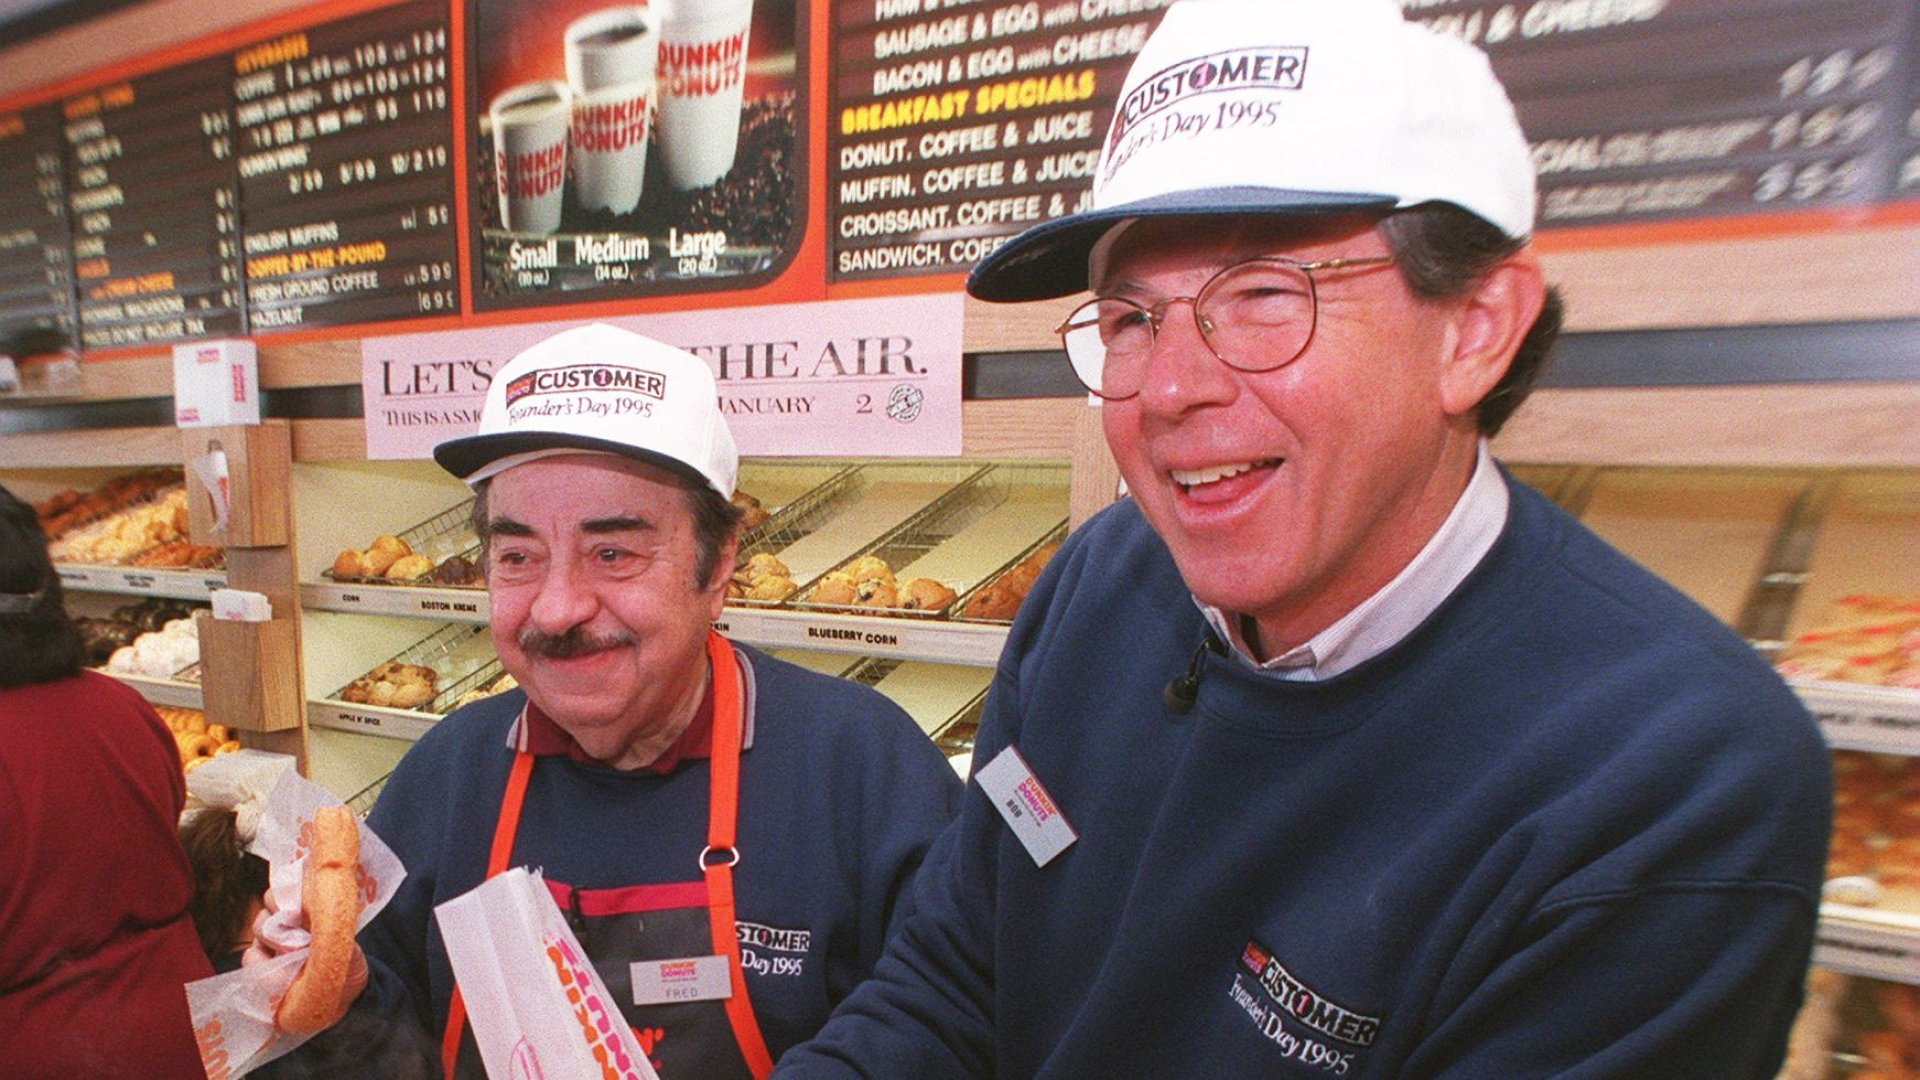 """Dunkin' Donuts CEO Bob Rosenberg pours a customer coffee as actor Michael Vale, who plays """"Fred the Baker"""" in TV commercials, gets ready with a donut at the original Dunkin' Donuts location in Quincy, Massachusetts on January 31, 1995."""